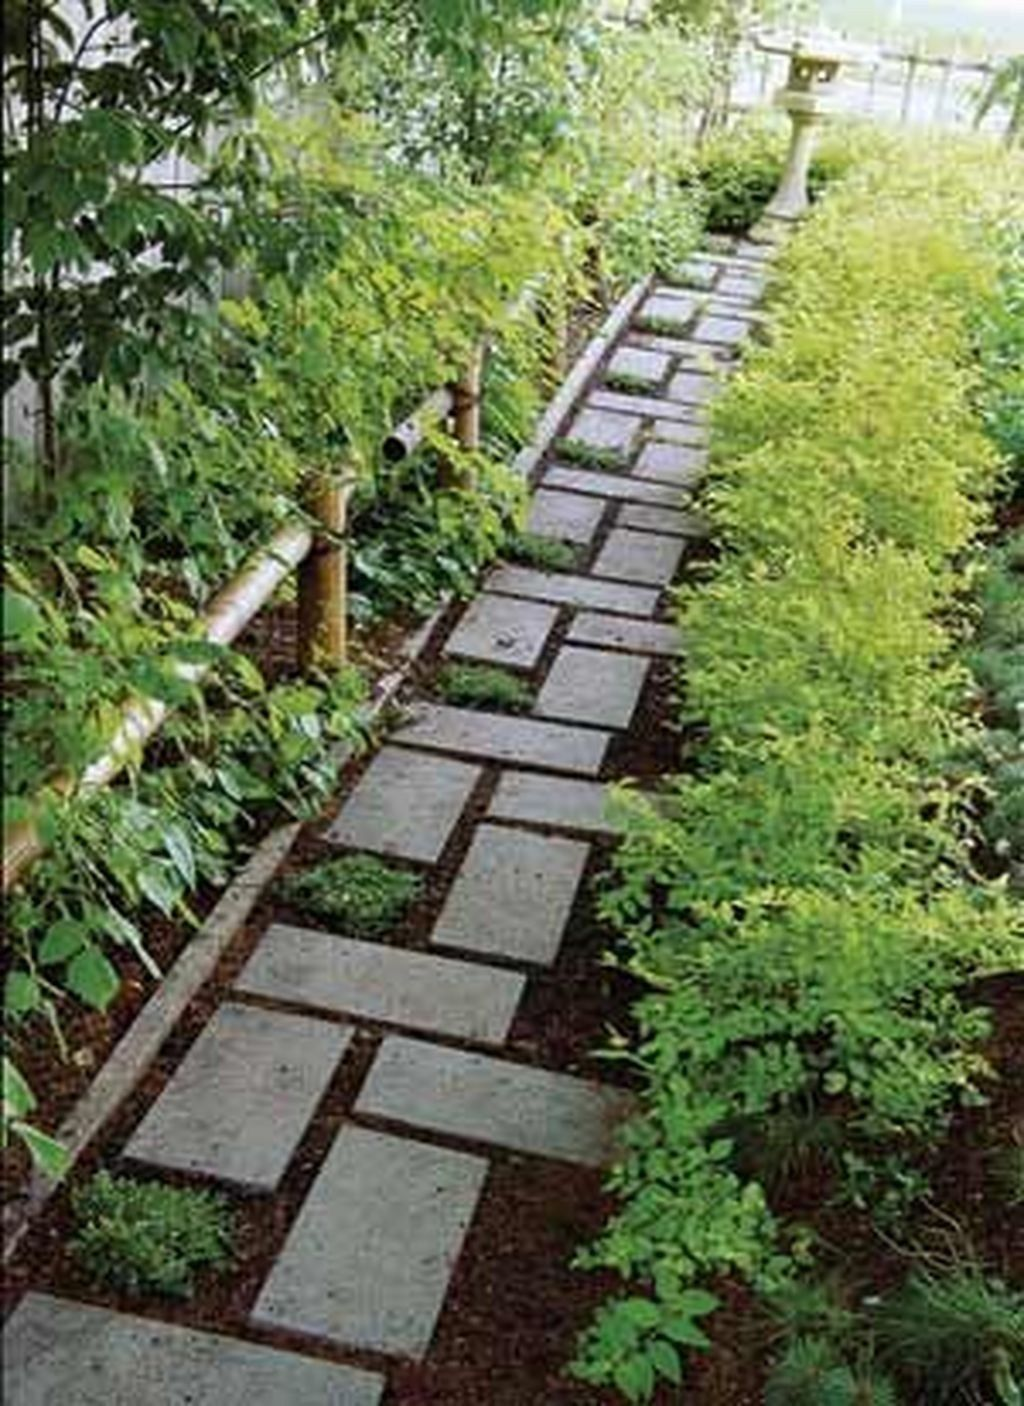 46 Inspiring Stepping Stones Pathway Ideas For Your Garden #steppingstonespathway Inspiring Stepping Stones Pathway Ideas For Your Garden 35 #steppingstonespathway 46 Inspiring Stepping Stones Pathway Ideas For Your Garden #steppingstonespathway Inspiring Stepping Stones Pathway Ideas For Your Garden 35 #steppingstonespathway 46 Inspiring Stepping Stones Pathway Ideas For Your Garden #steppingstonespathway Inspiring Stepping Stones Pathway Ideas For Your Garden 35 #steppingstonespathway 46 Inspi #steppingstonespathway